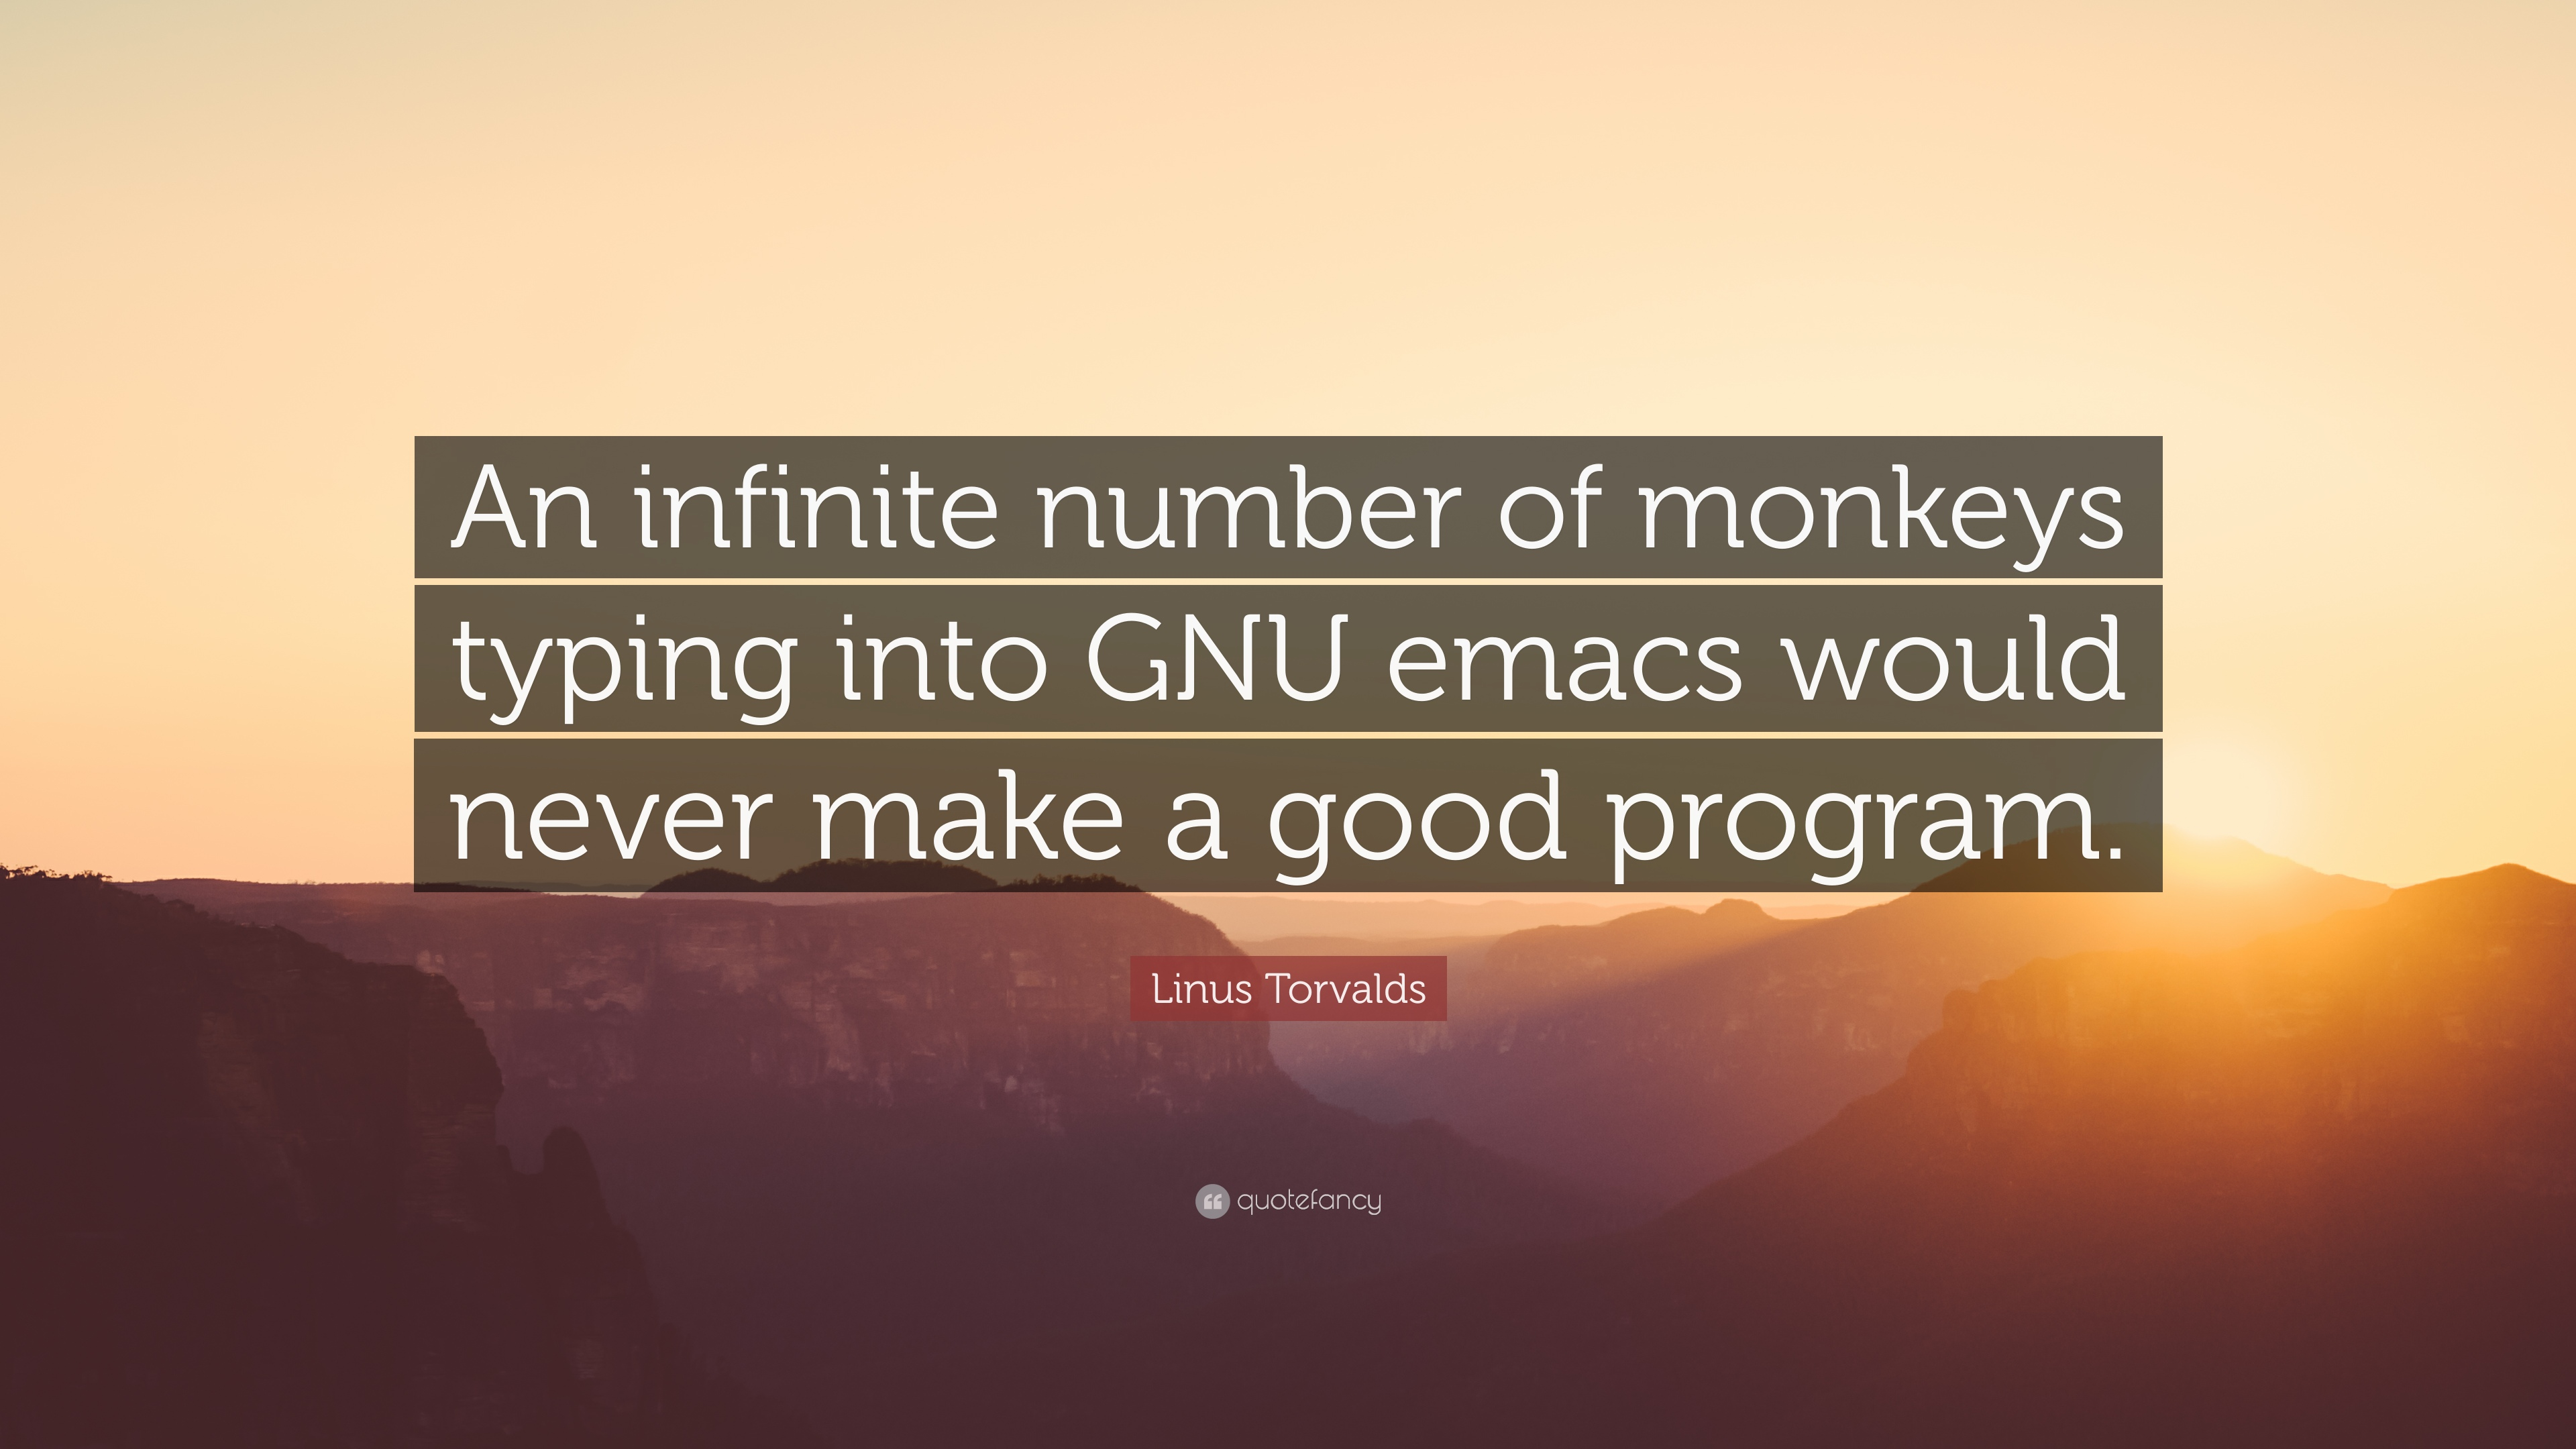 infinite number of monkey anlysis This quote is perhaps the most famous reference to the infinite monkeys theorem this theorem states that if you put an infinite number of monkeys behind typewriters, eventually one will write the script for hamlet .